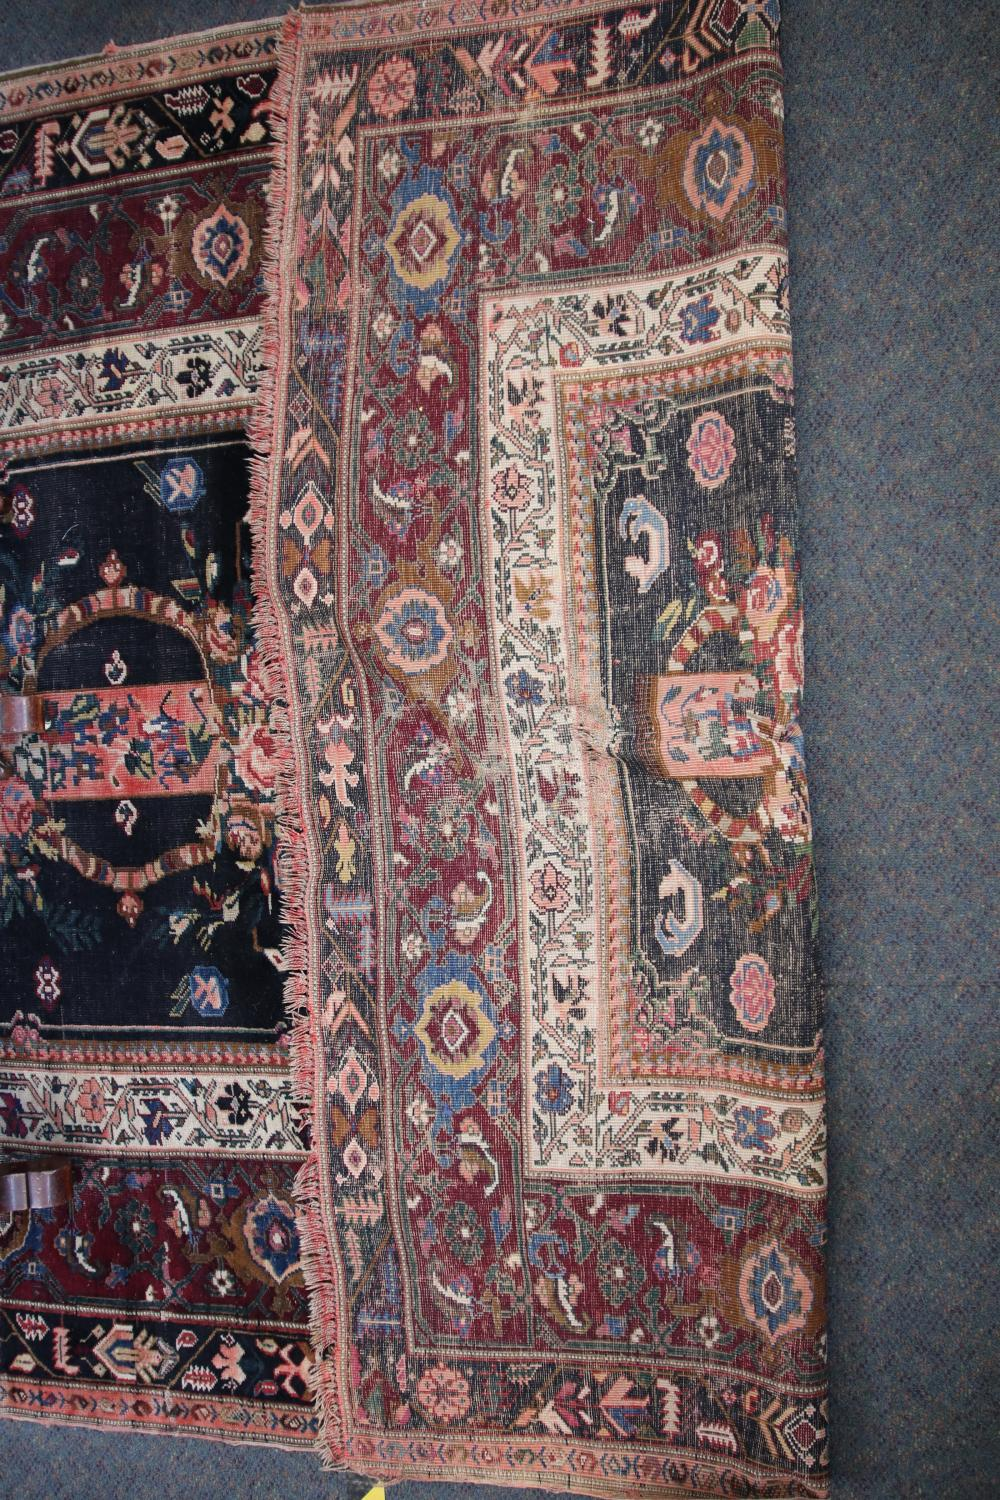 ANTIQUE PERSIAN (KARABAGH REGION) HAND KNOTTED WOOL LONG RUG, WITH BLUE, MAROON AND CREAM FRENCH ROSE PATTERN FLORAL MEDALLION AND BORDER, MEASURES 178CM X 374CM (WEAR AND FRAYED EDGES)